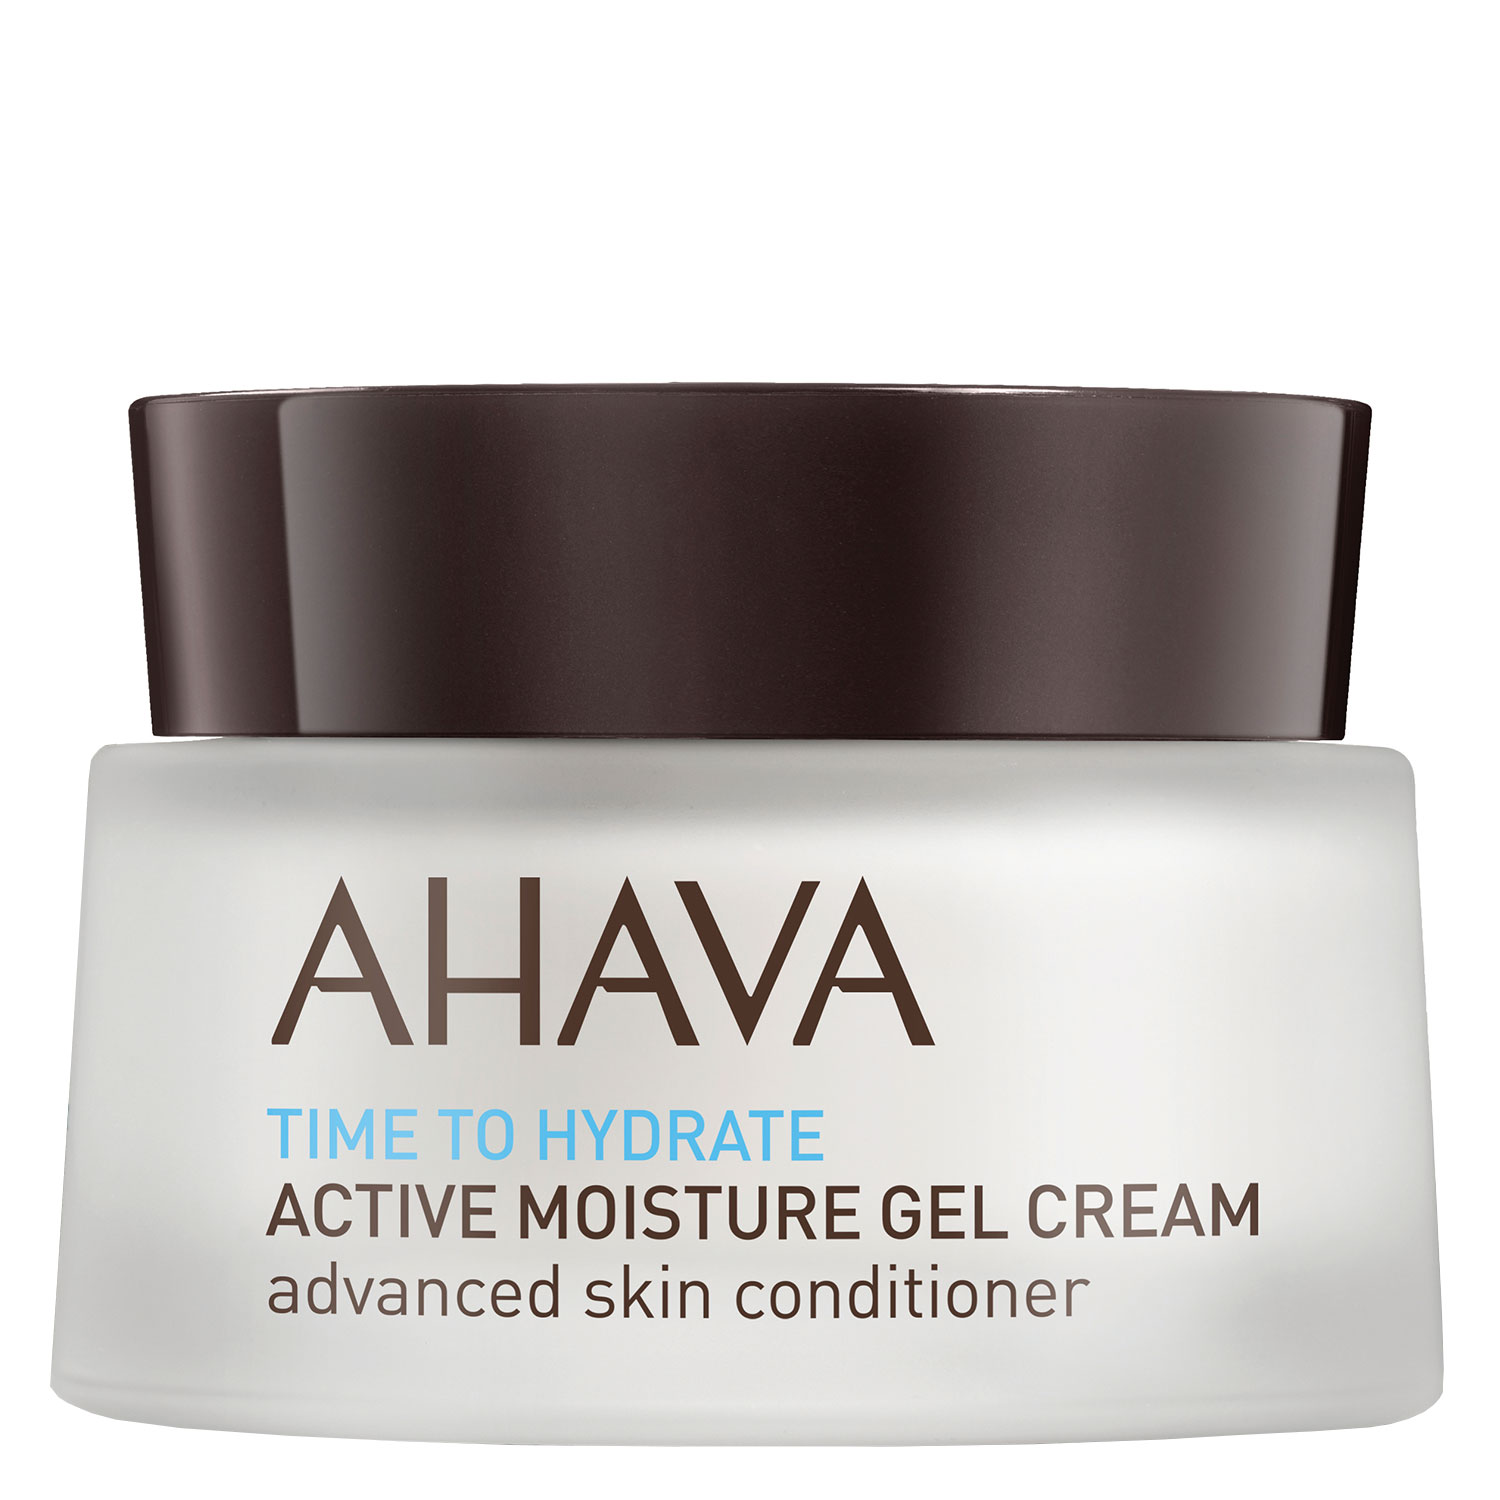 Time To Hydrate - Active Moisture Gel Cream